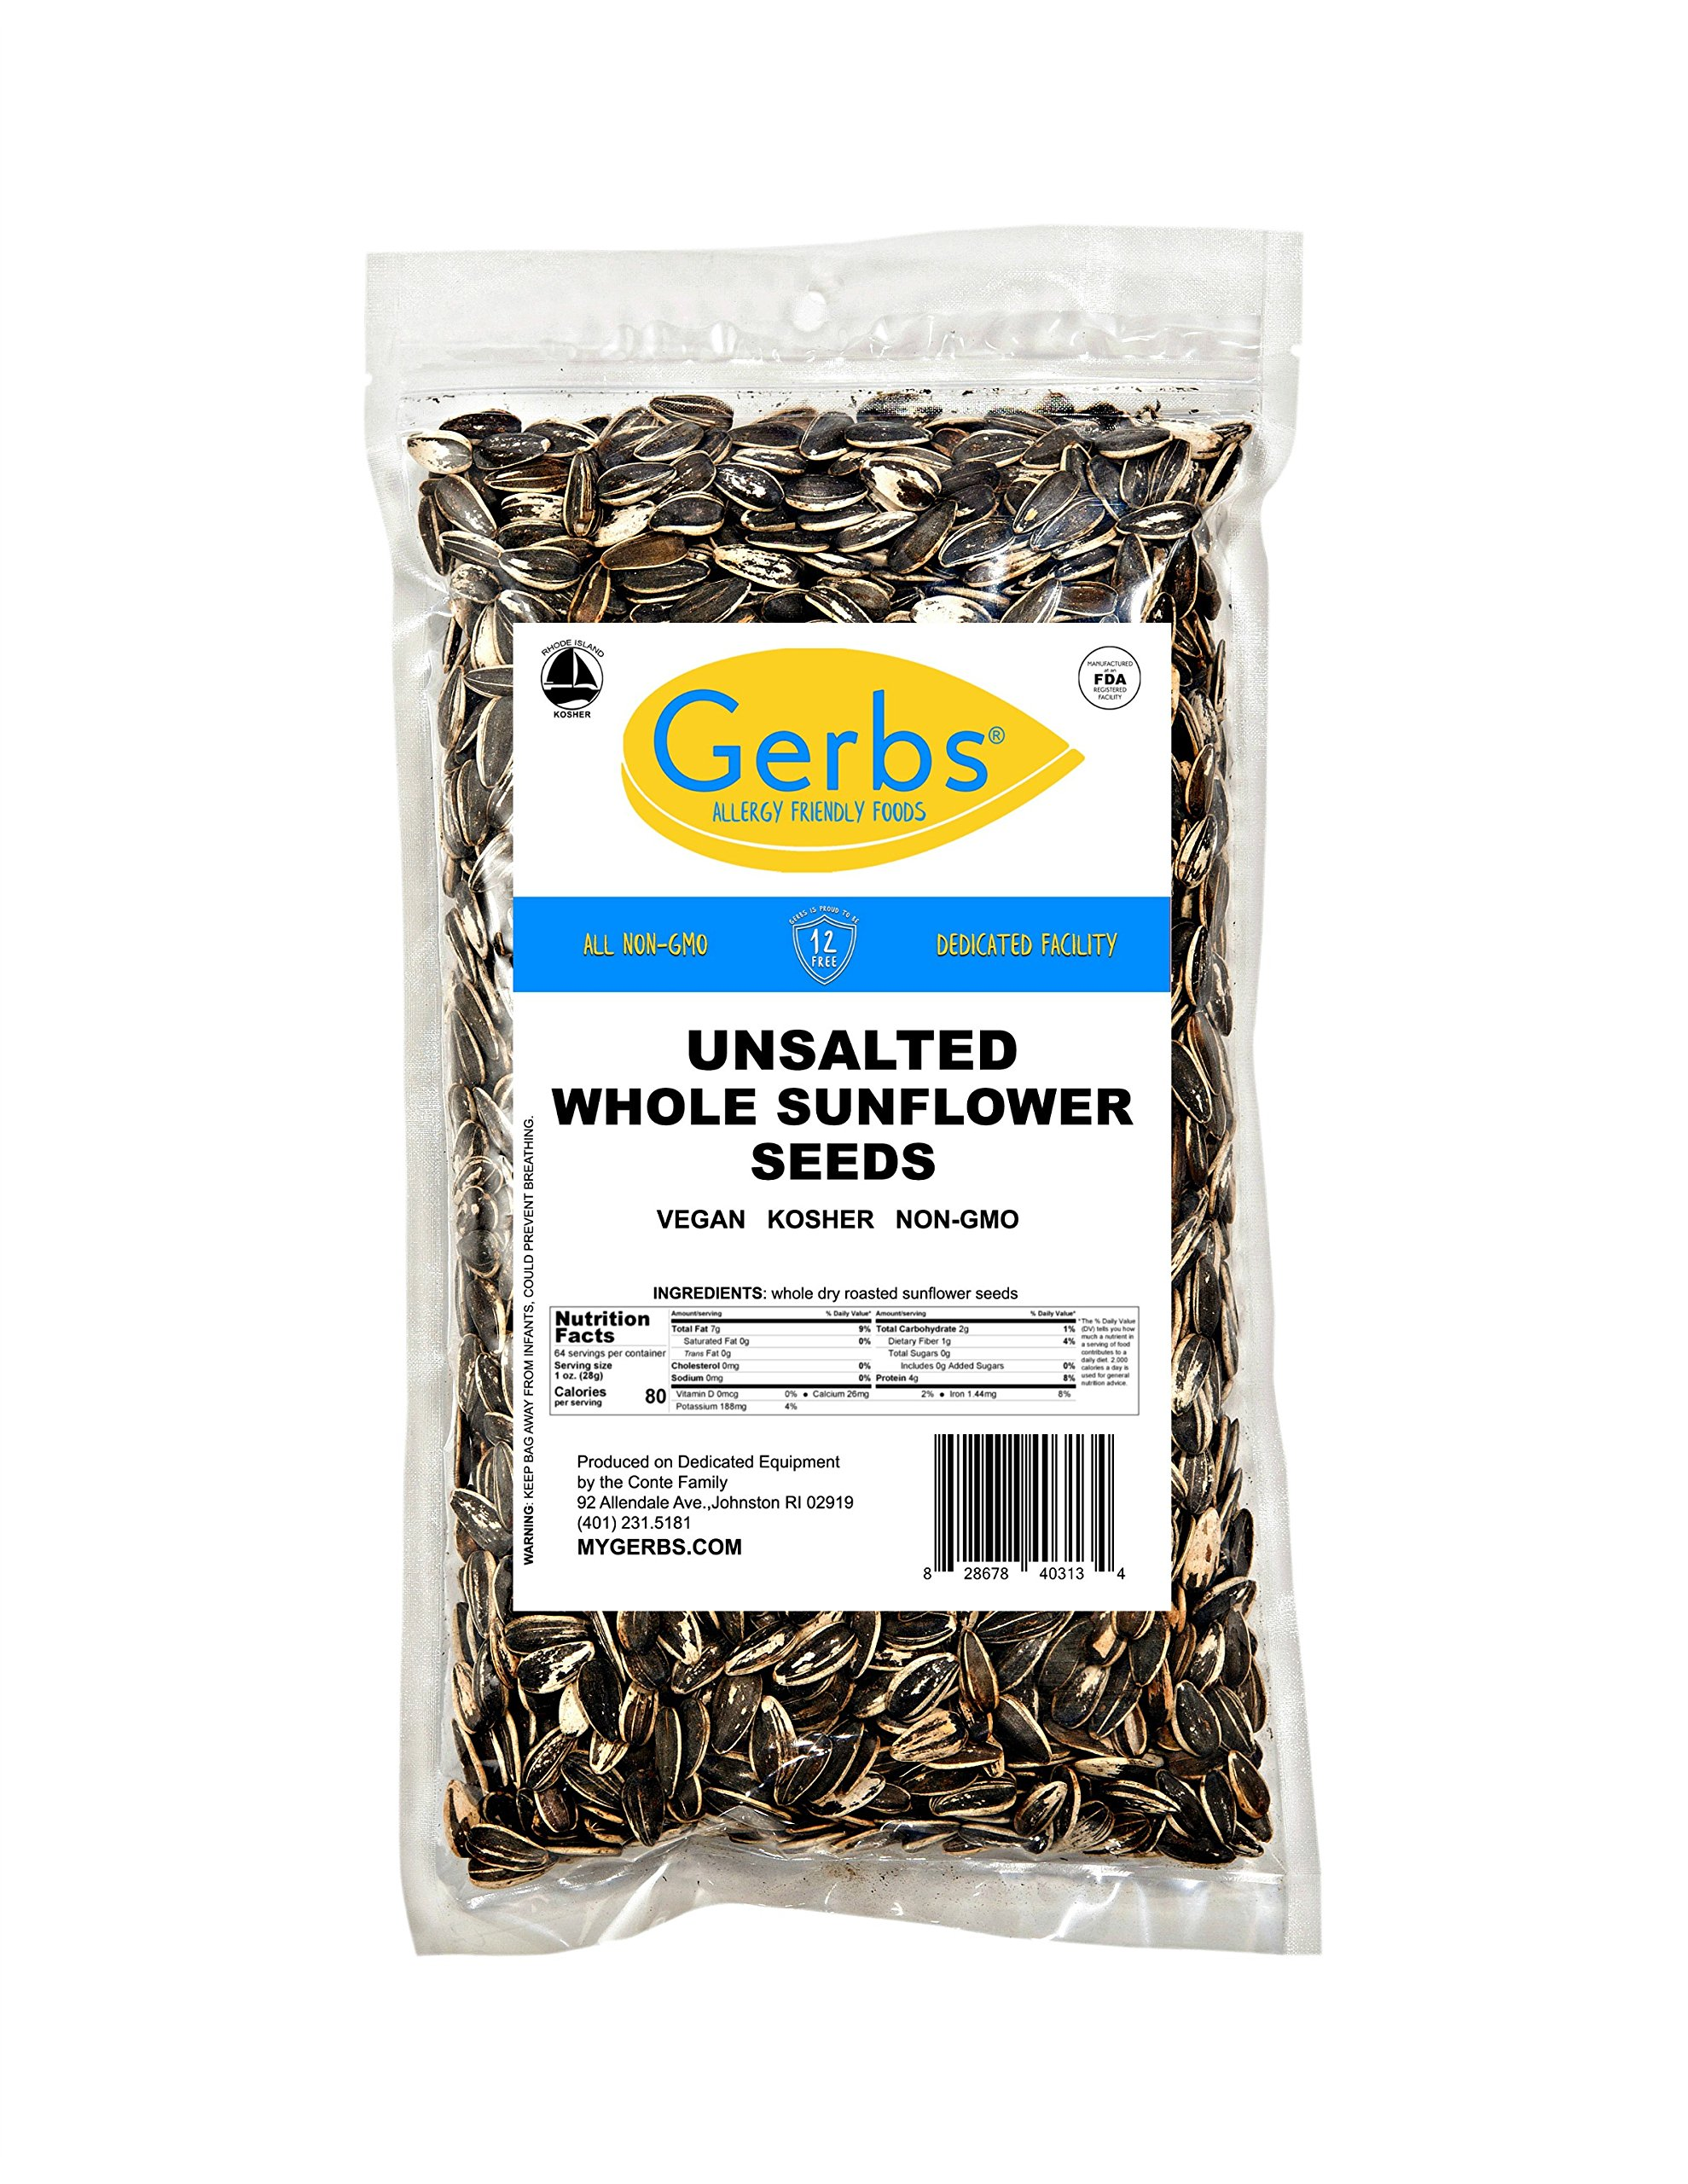 GERBS Unsalted Whole Sunflower Seeds by 4 LBS - Top 12 Food Allergy Free & NON GMO - Vegan & Kosher - In-Shell Dry Roasted Seeds Grown in USA